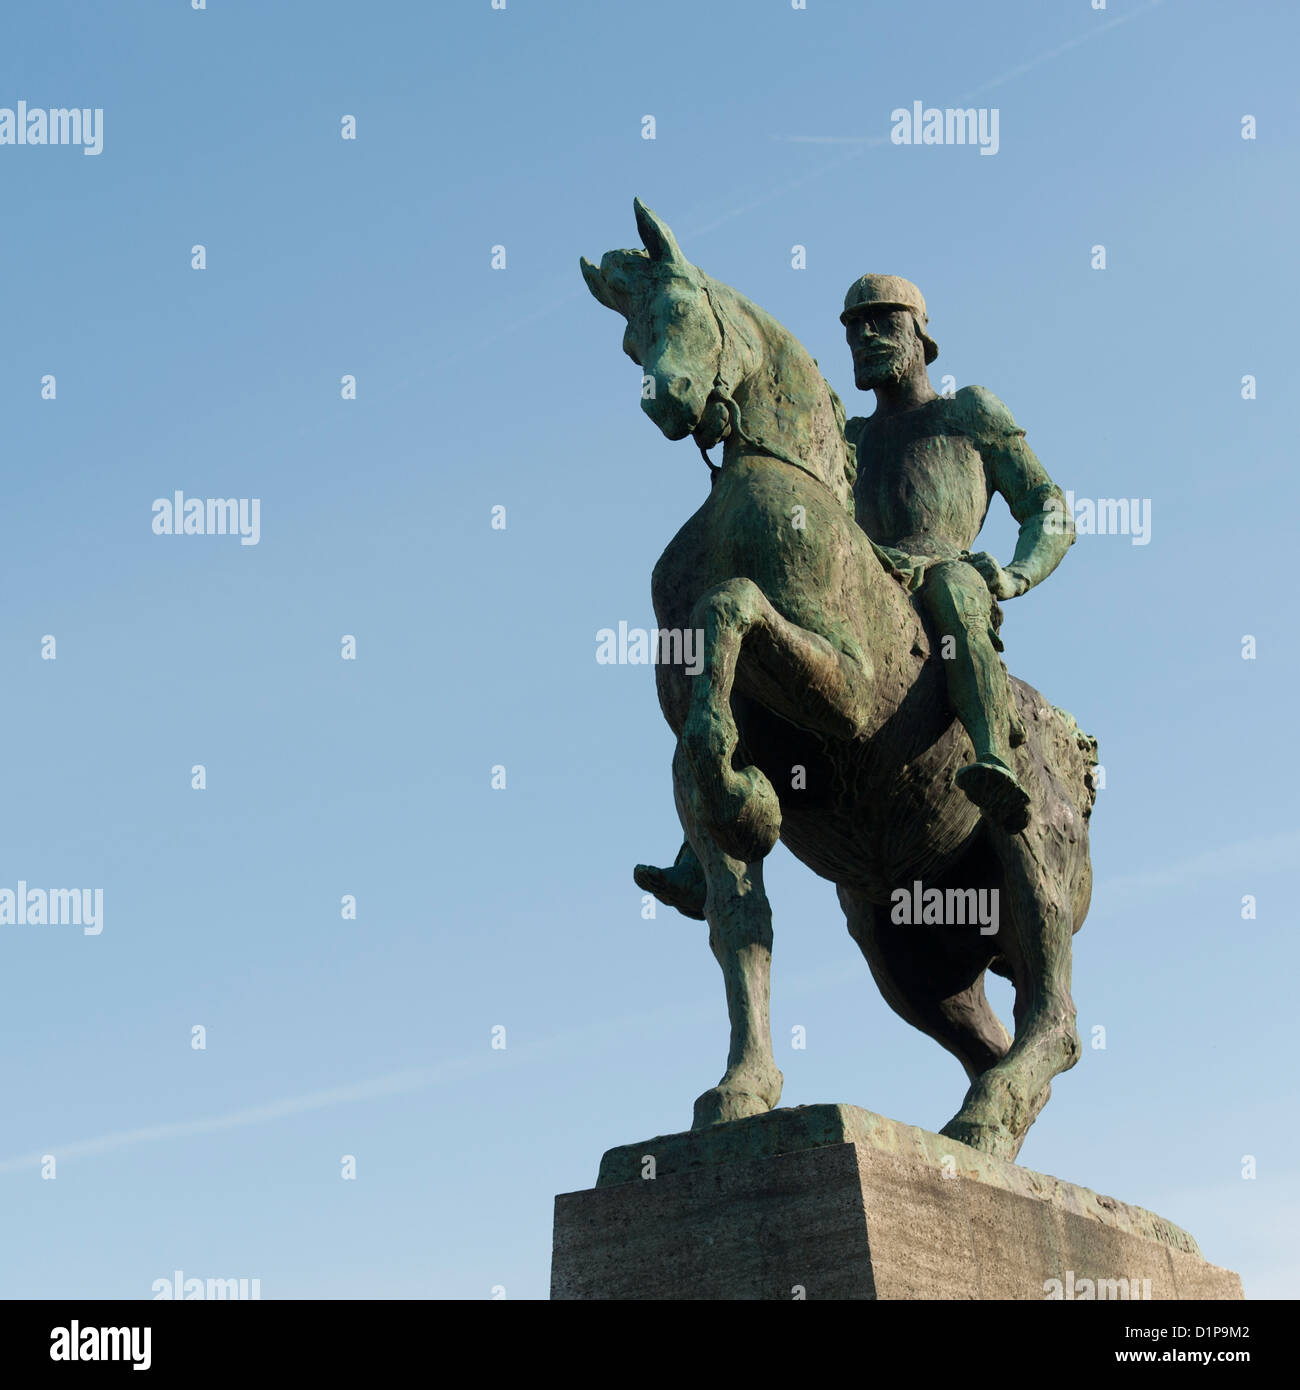 Low angle view of an equestrian statue, Bahnhofstrasse, Zurich, Switzerland - Stock Image